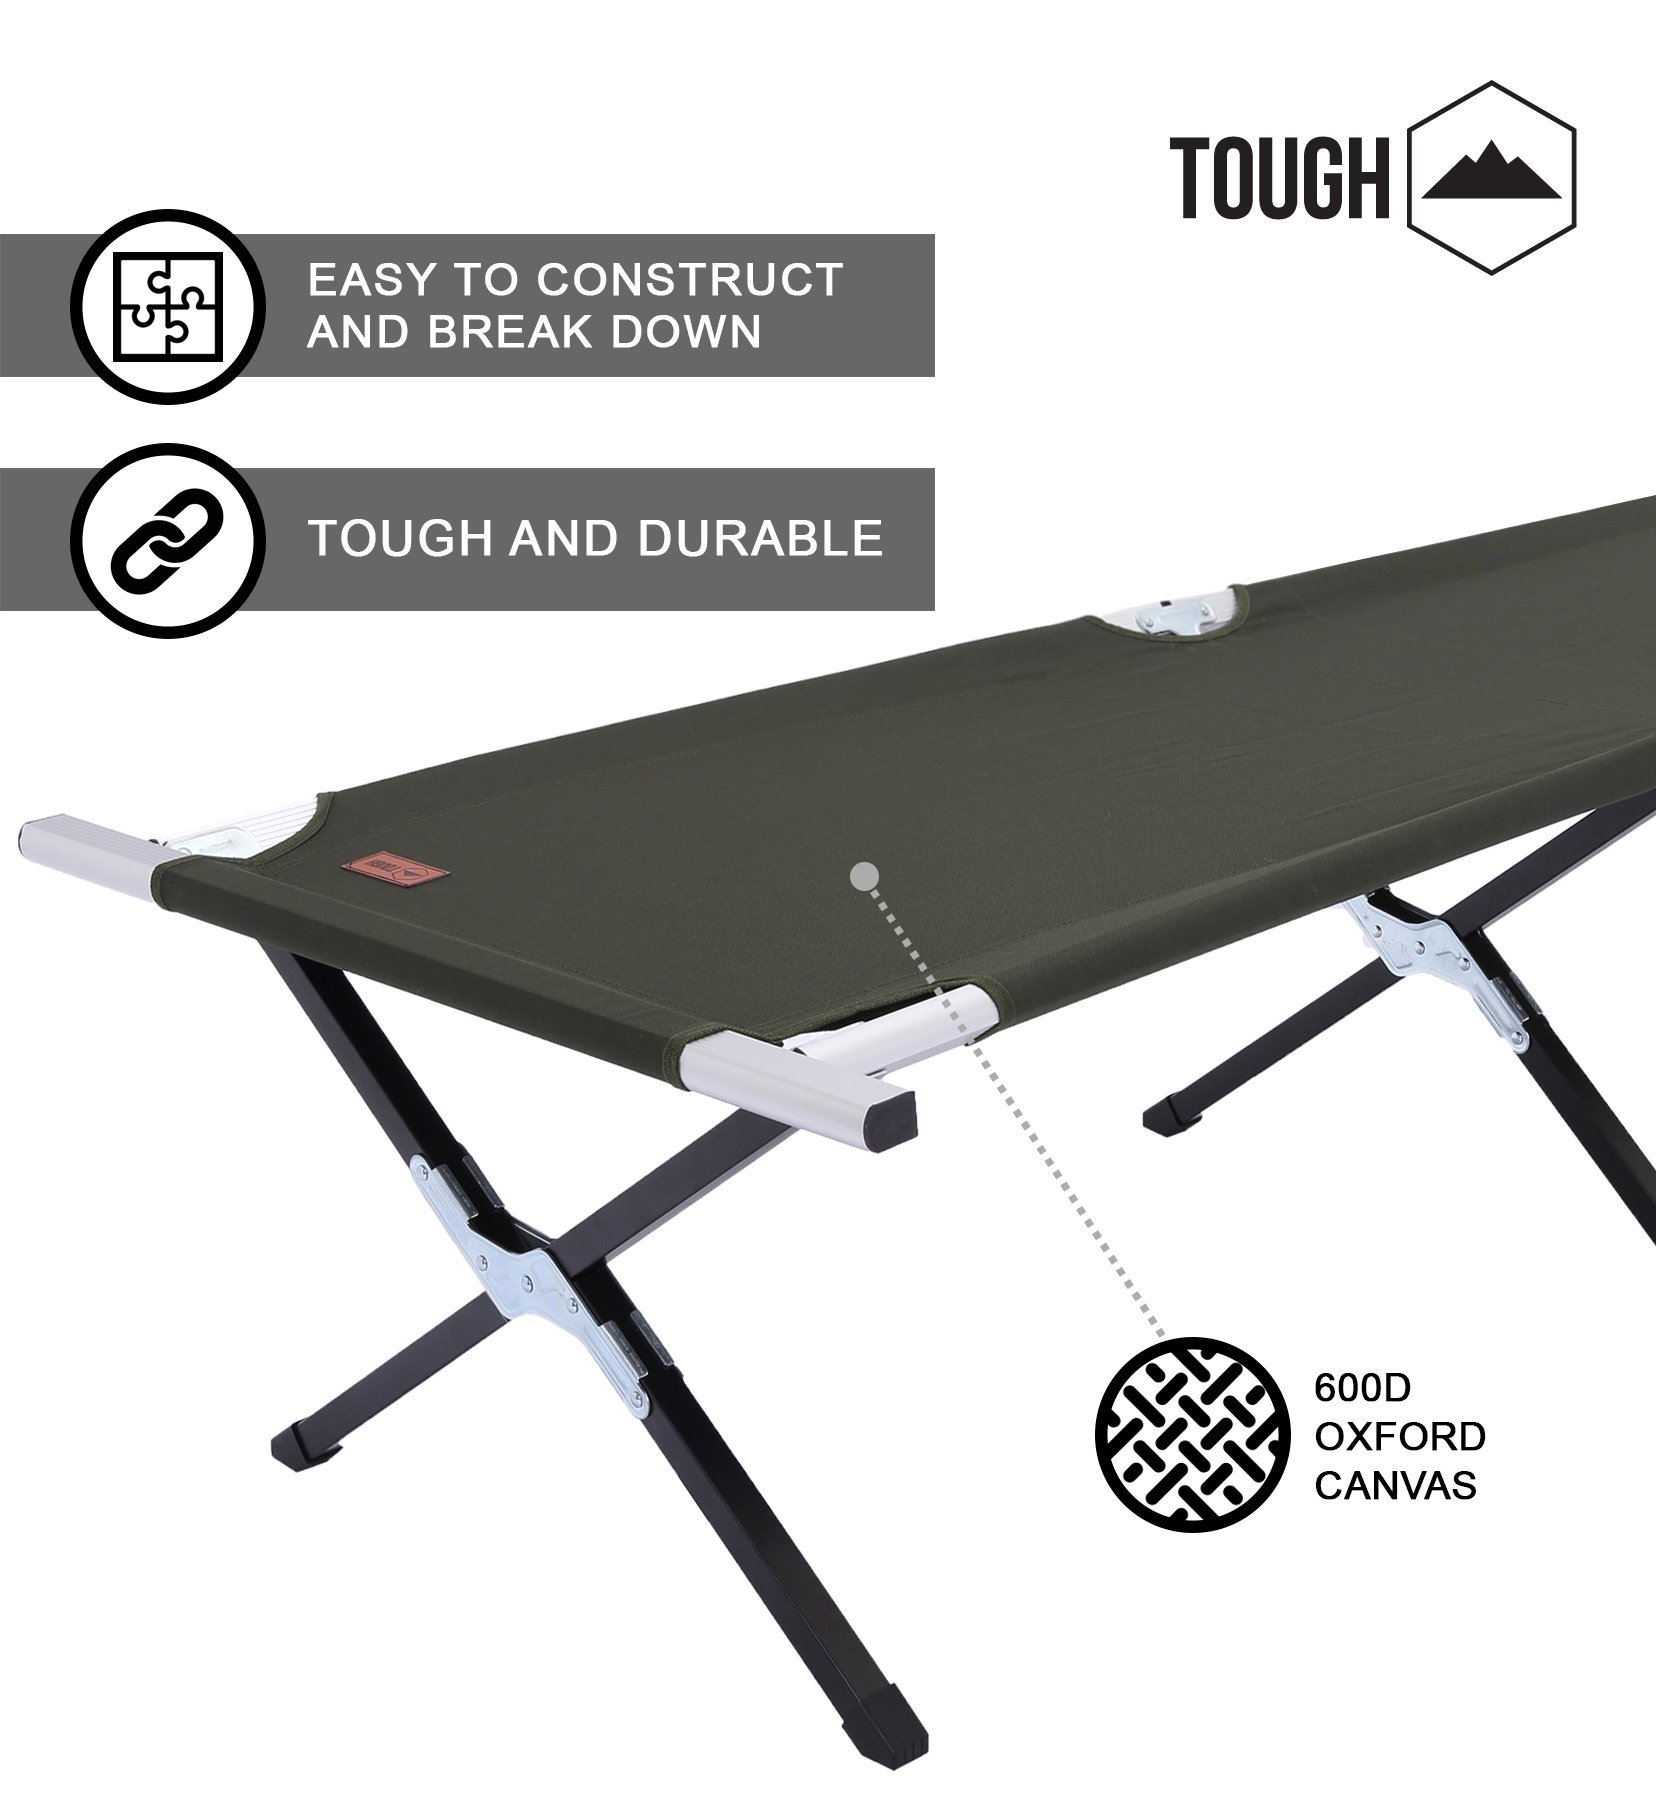 Tough Outdoors Camping Cot Folding Military Army Camp